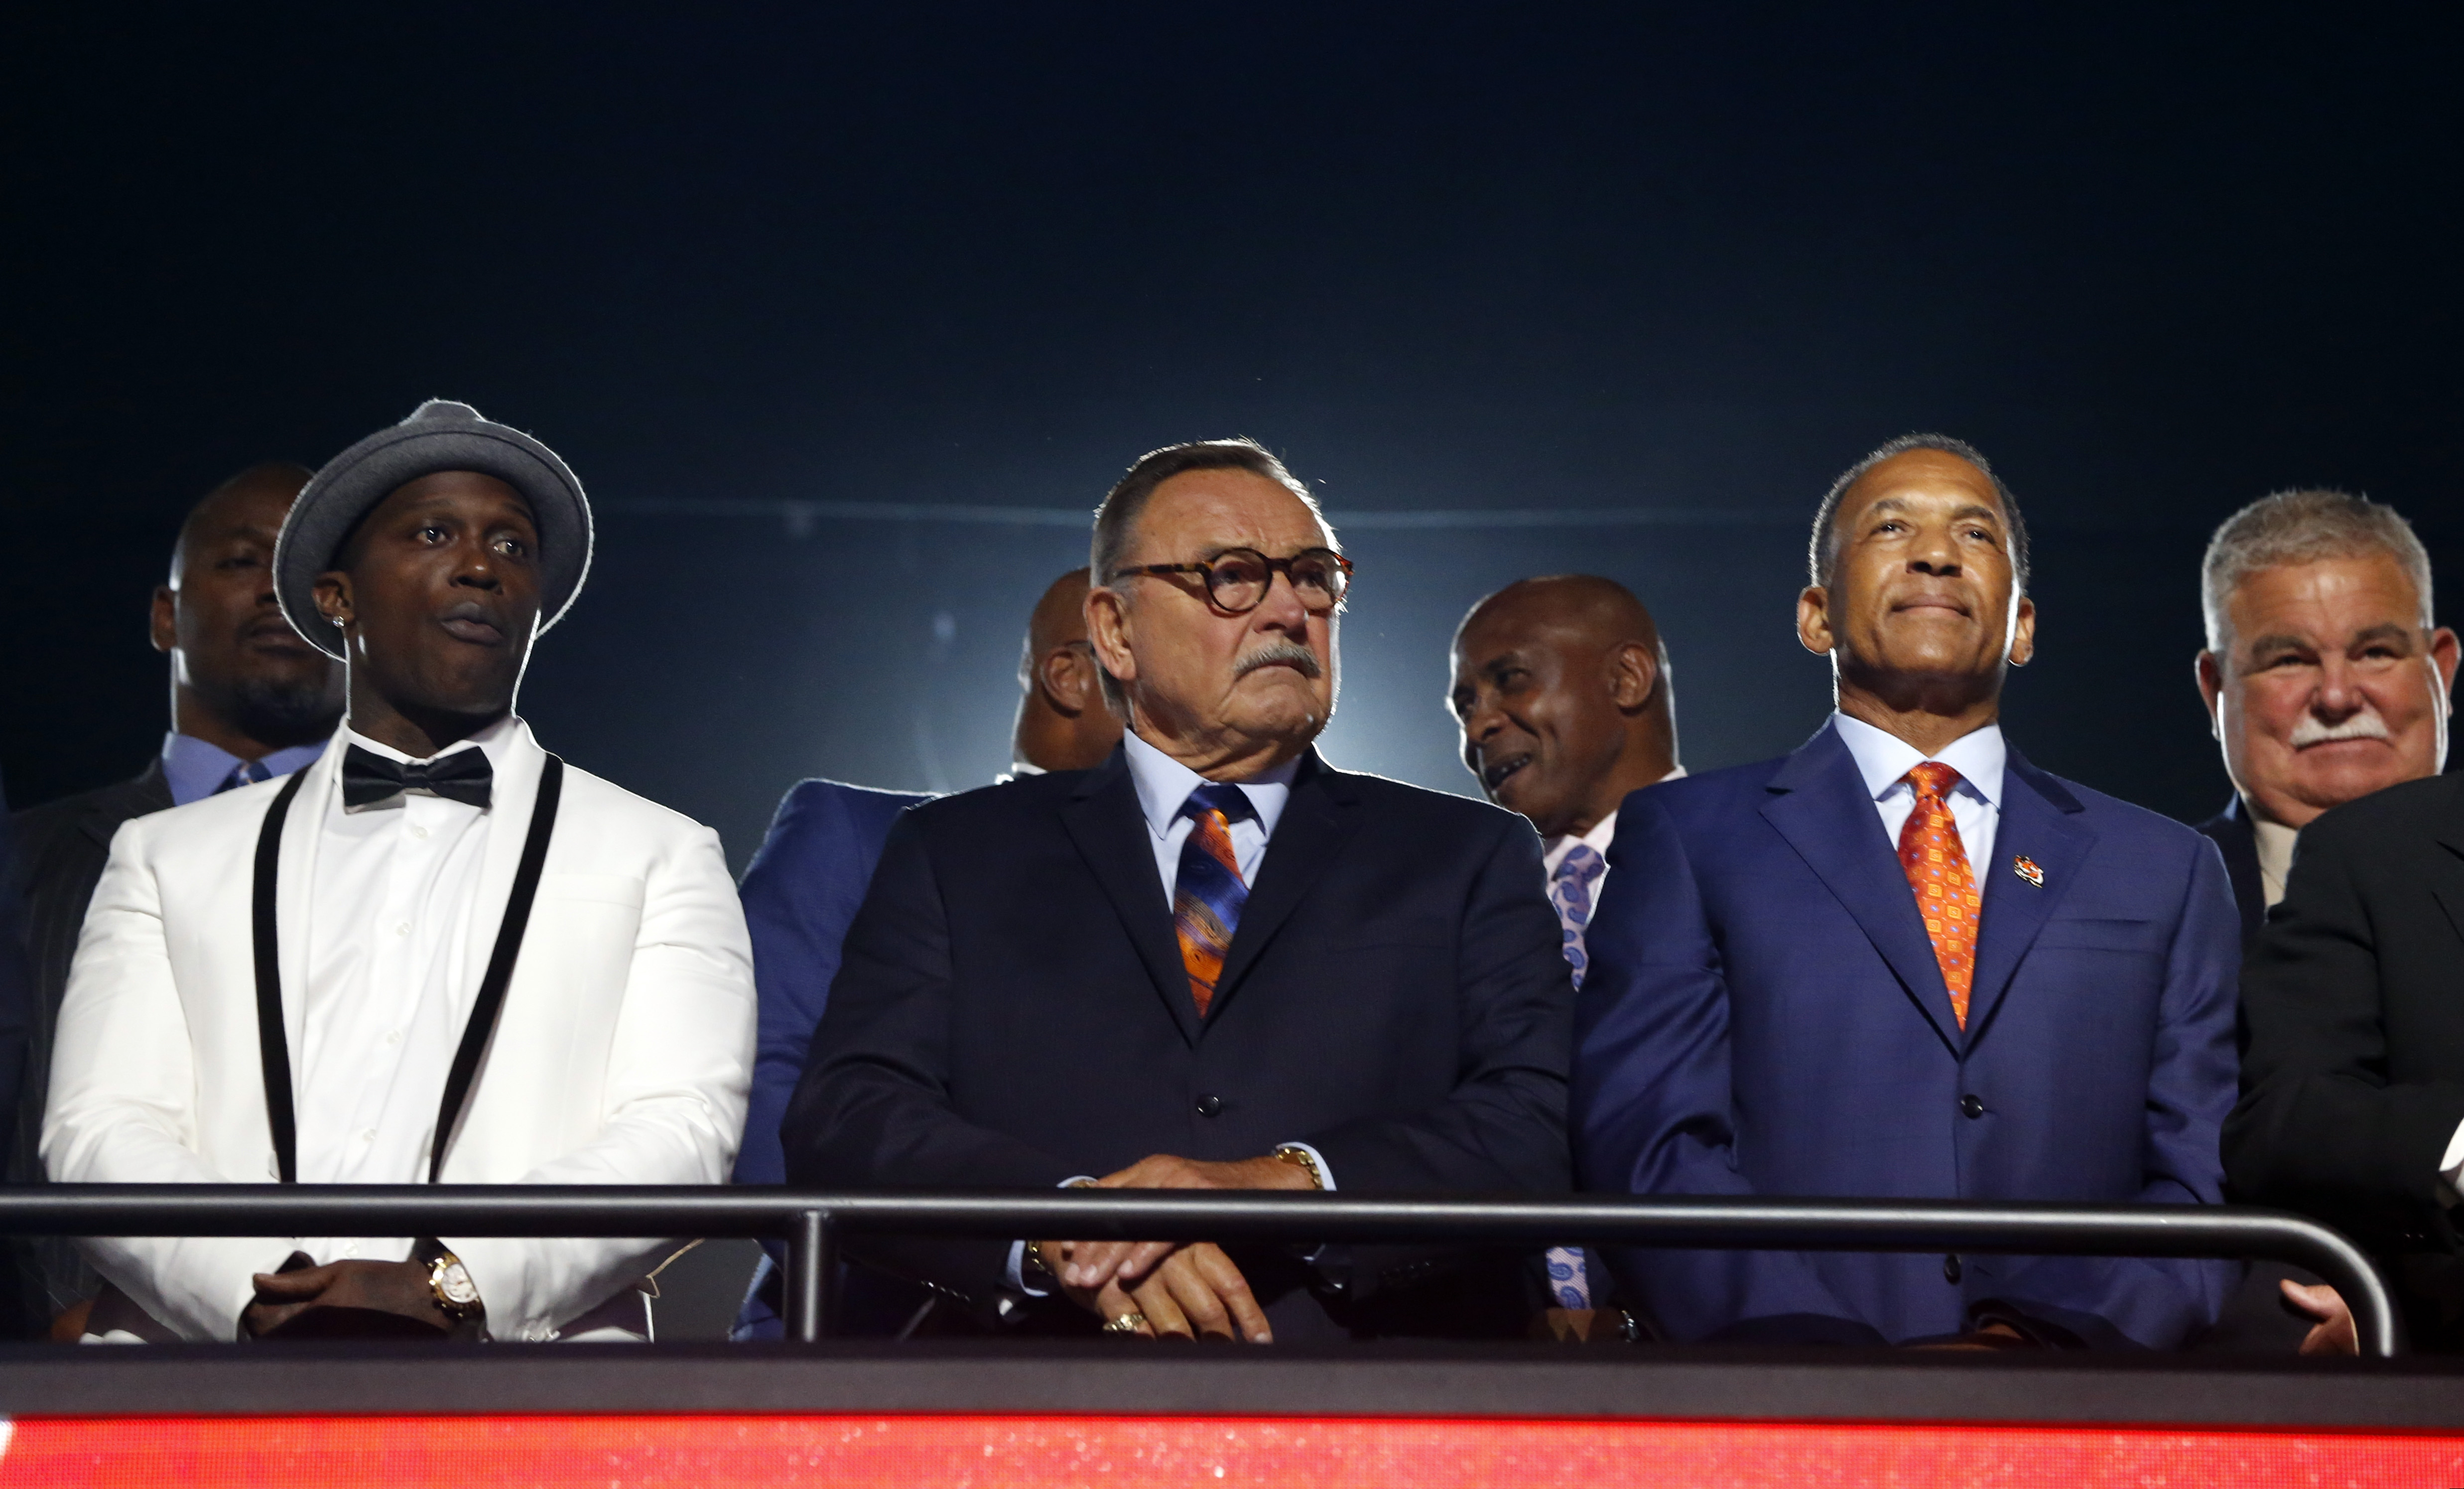 NFL Hall of Famer Dick Butkus, center, waits for the second round of the 2016 NFL football draft with former players, Friday, April 29, 2016, in Chicago. (AP Photo/Charles Rex Arbogast)